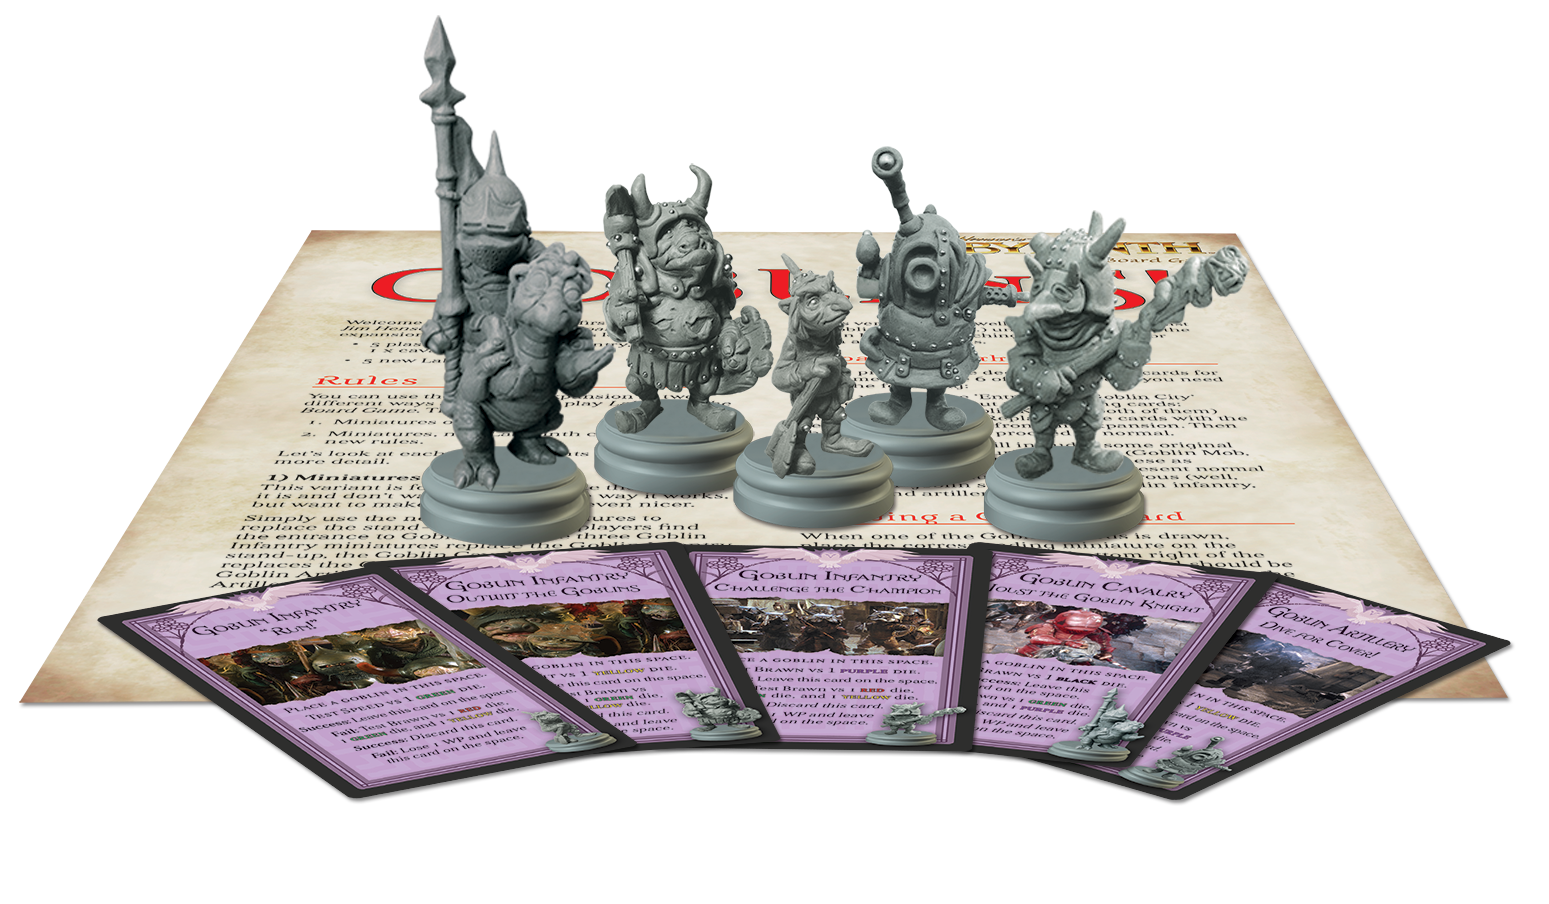 Components of the Goblins! Expansion for Jim Henson's Labyrinth the Board Game by River Horse